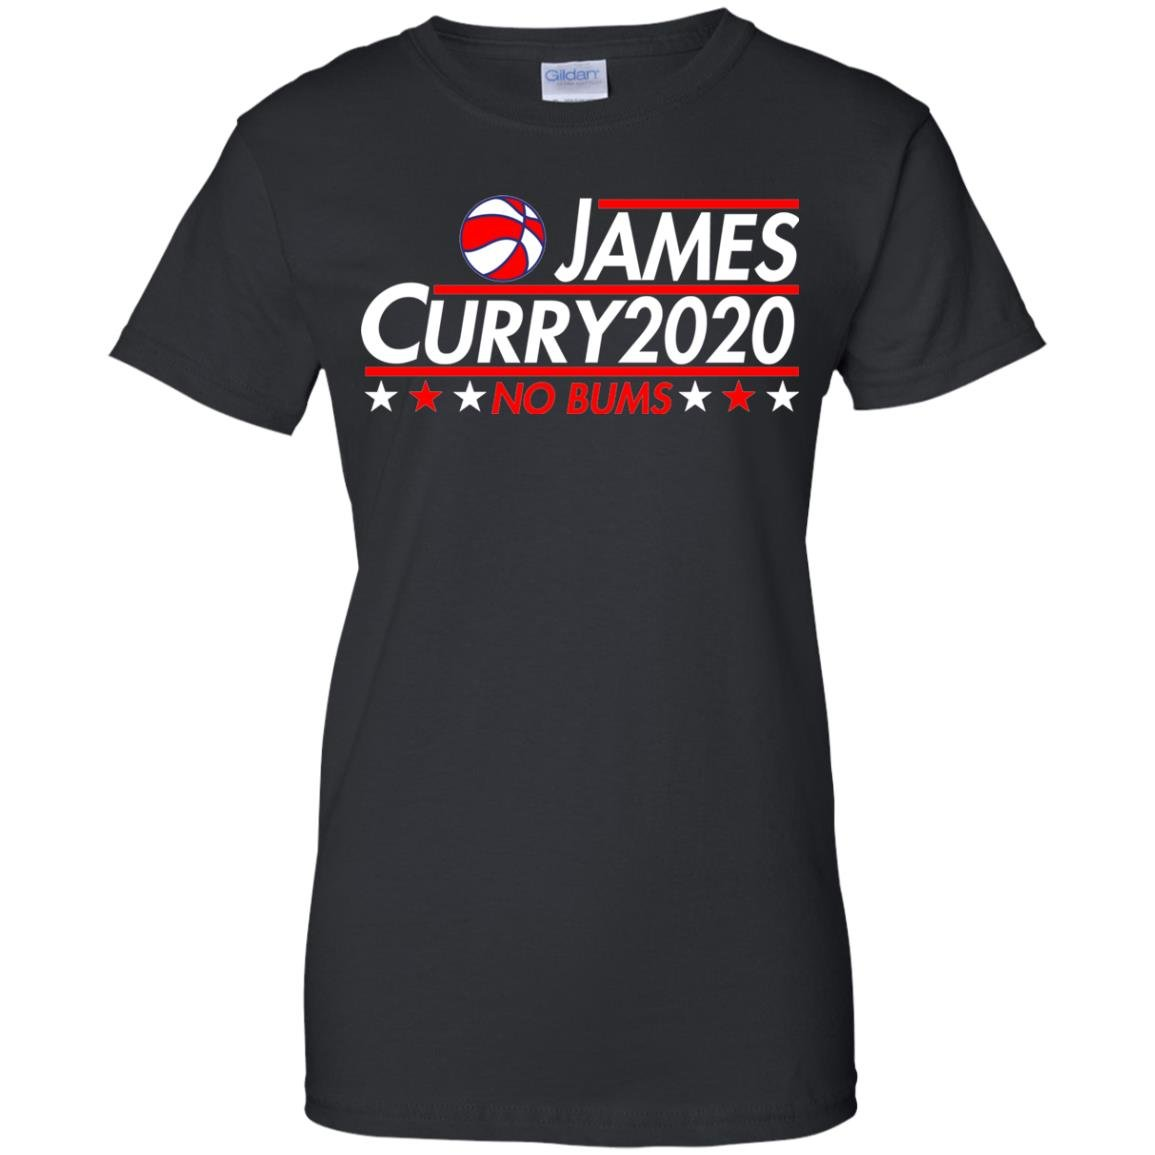 image 2176 - James Curry 2020 shirt No Bums: James & Curry for President